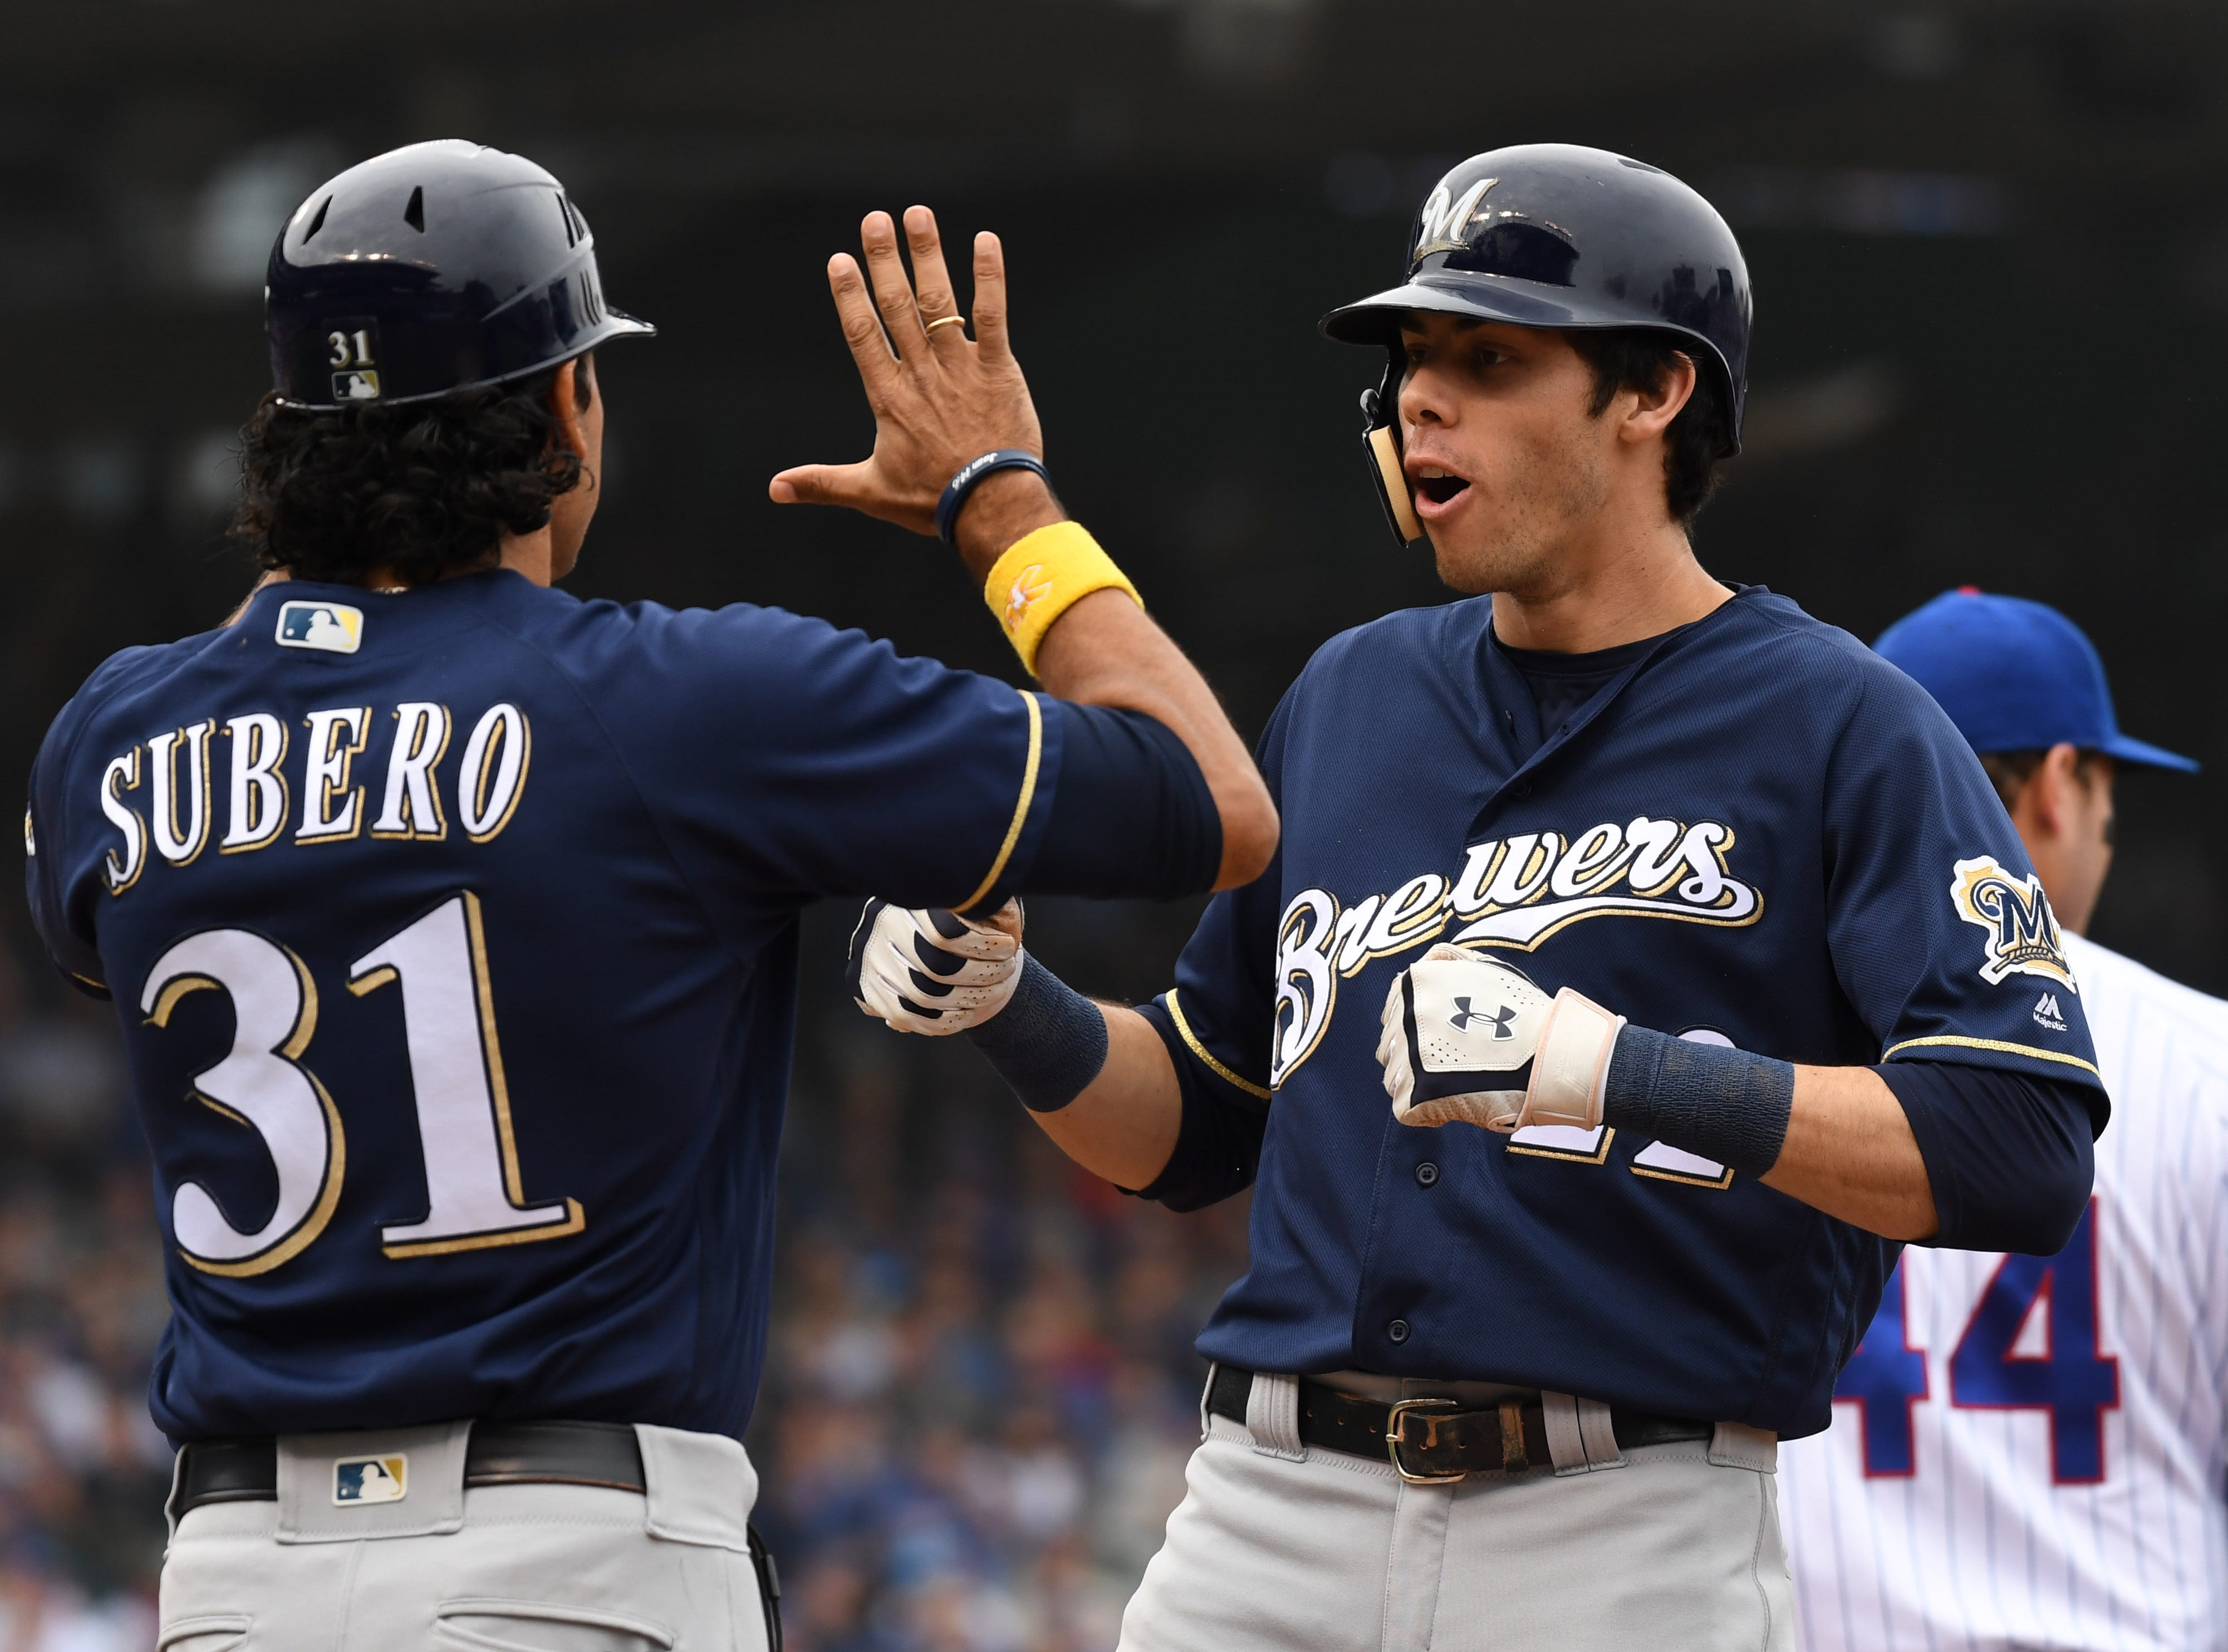 Brewers first base coach Carlos Subero  and outfielder Christian Yelich celebrate Yelich's RBI single in the third inning.